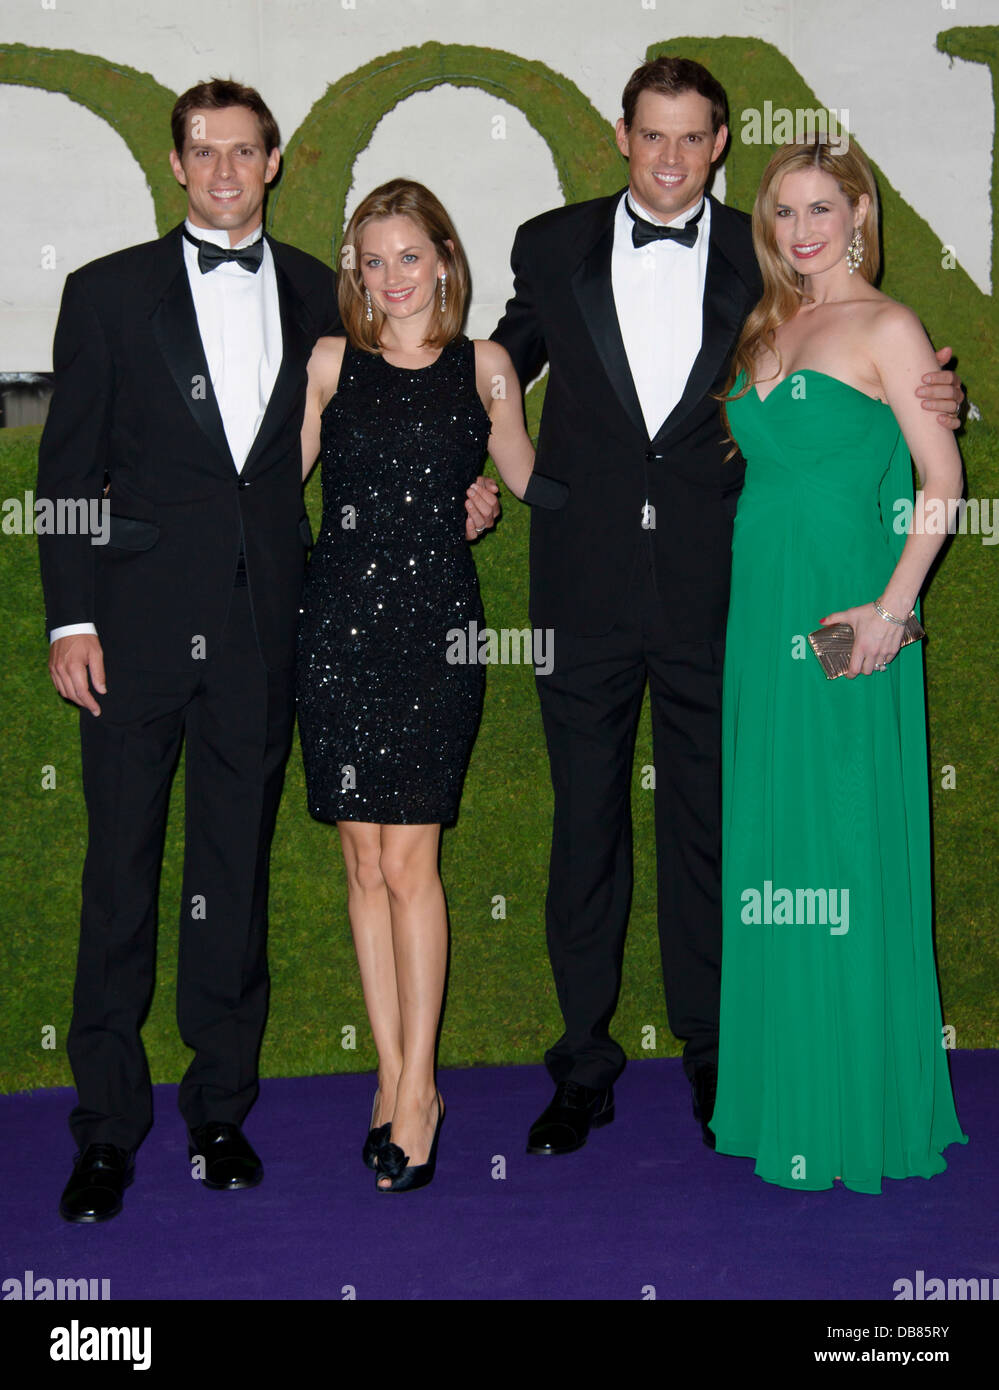 Mike Bryan and Bob Bryan, with unidentified guests, arrive for the Wimbledon Champions Dinner 2013, London. - Stock Image